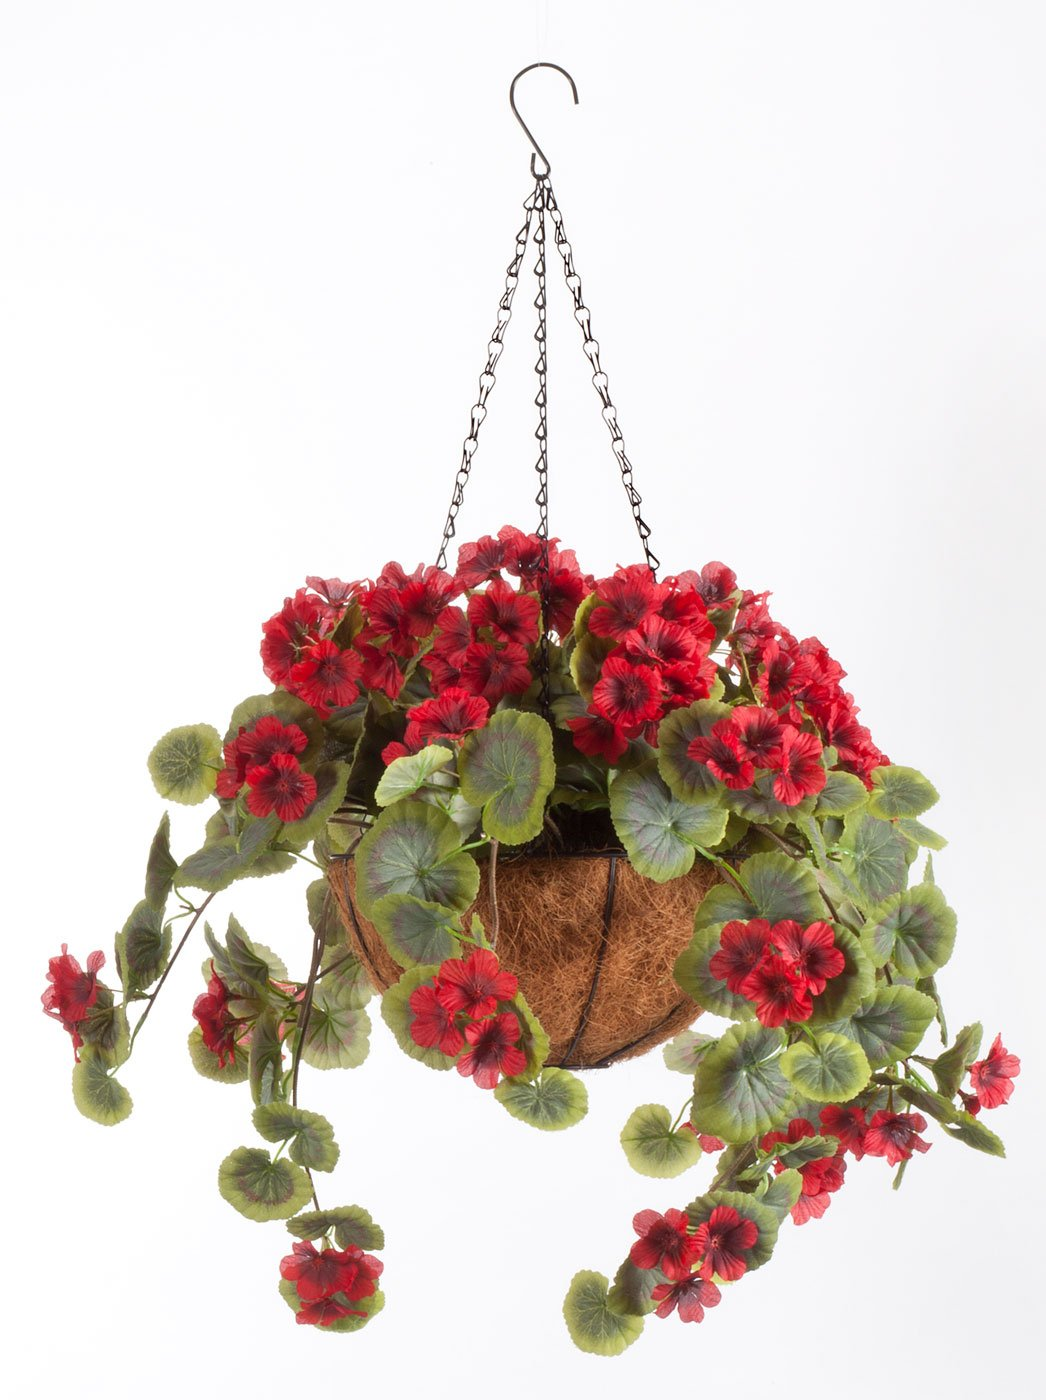 OakRidge Miles Kimball Fully Assembled Artificial Geranium Hanging Basket, 10'' Diameter and 18'' Chain - Red Polyester/Plastic Flowers in Metal and Coco Fiber Liner Basket for Indoor/Outdoor Use